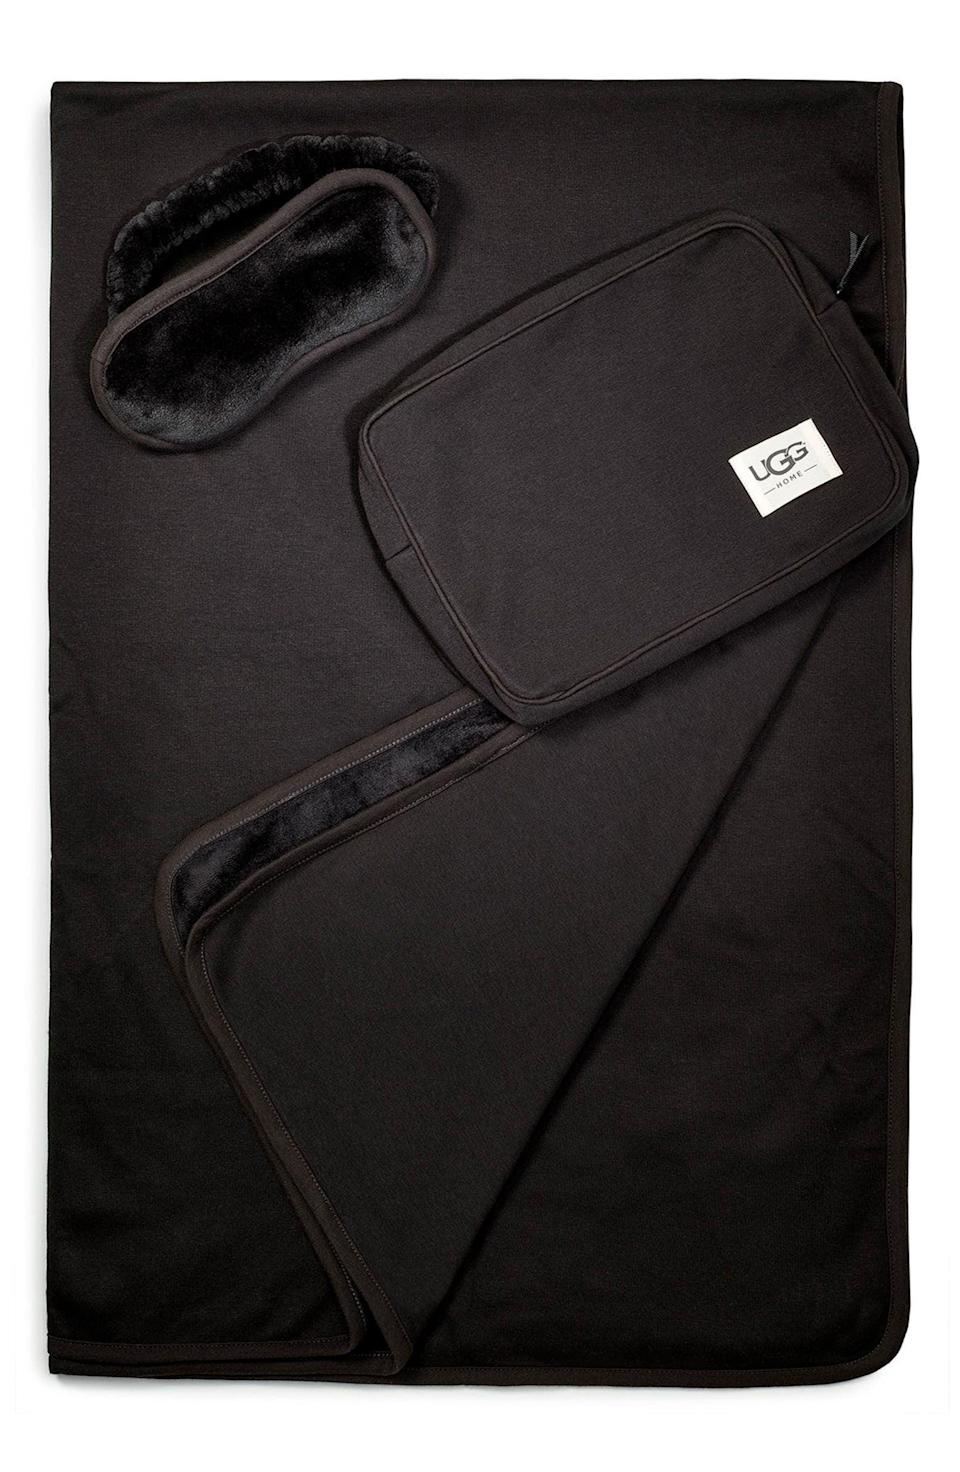 <p>If you're loved one travels a lot, get them this <span>Ugg Duffield Eye Mask, Pouch &amp; Blanket Travel Set</span> ($98). Not only will they actually use this set but they will endlessly thank you for it during those uncomfortable flights. The set contains a blanket, an eye mask, and a plush zip pouch that doubles as a pillow.</p>